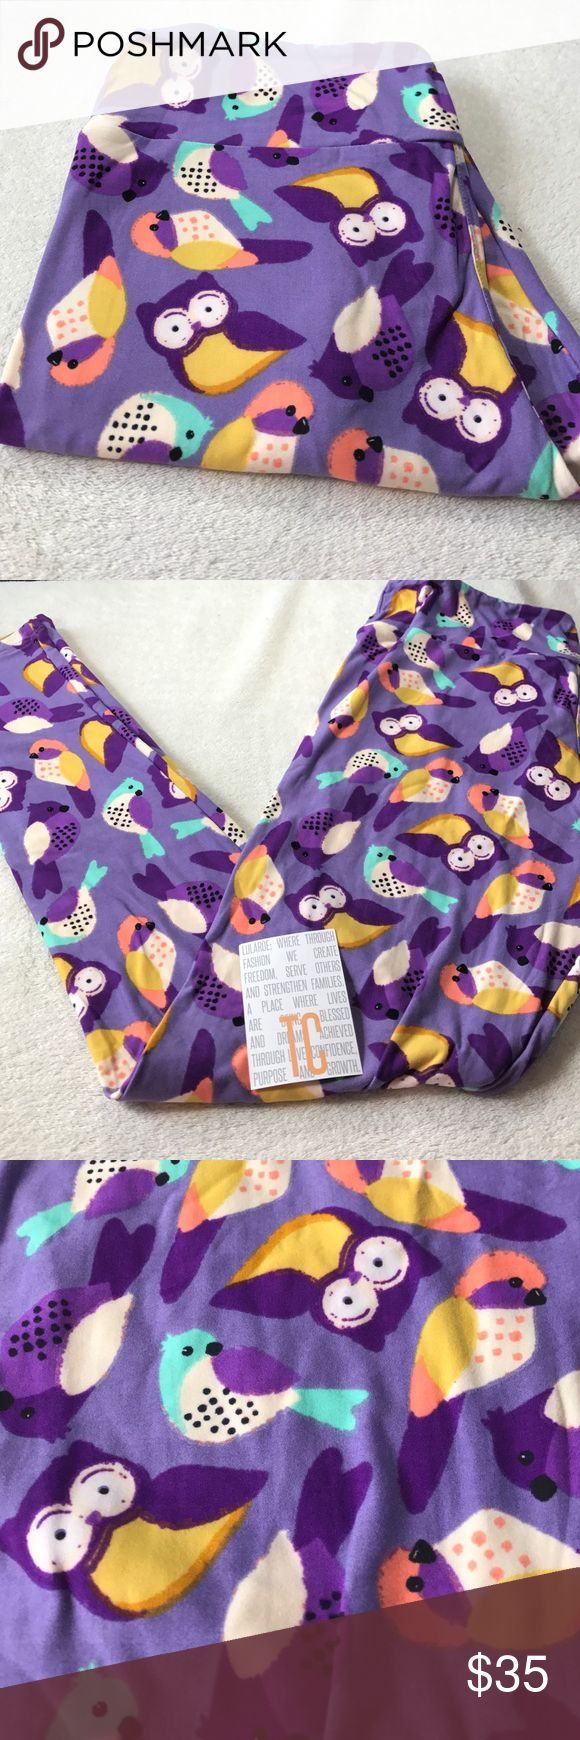 LuLaRoe Tall and curvy leggings nwt LuLaRoe Tall and curvy leggings nwt. ❤️ price is firm unless bundled. Beautiful owl print LuLaRoe Pants Leggings